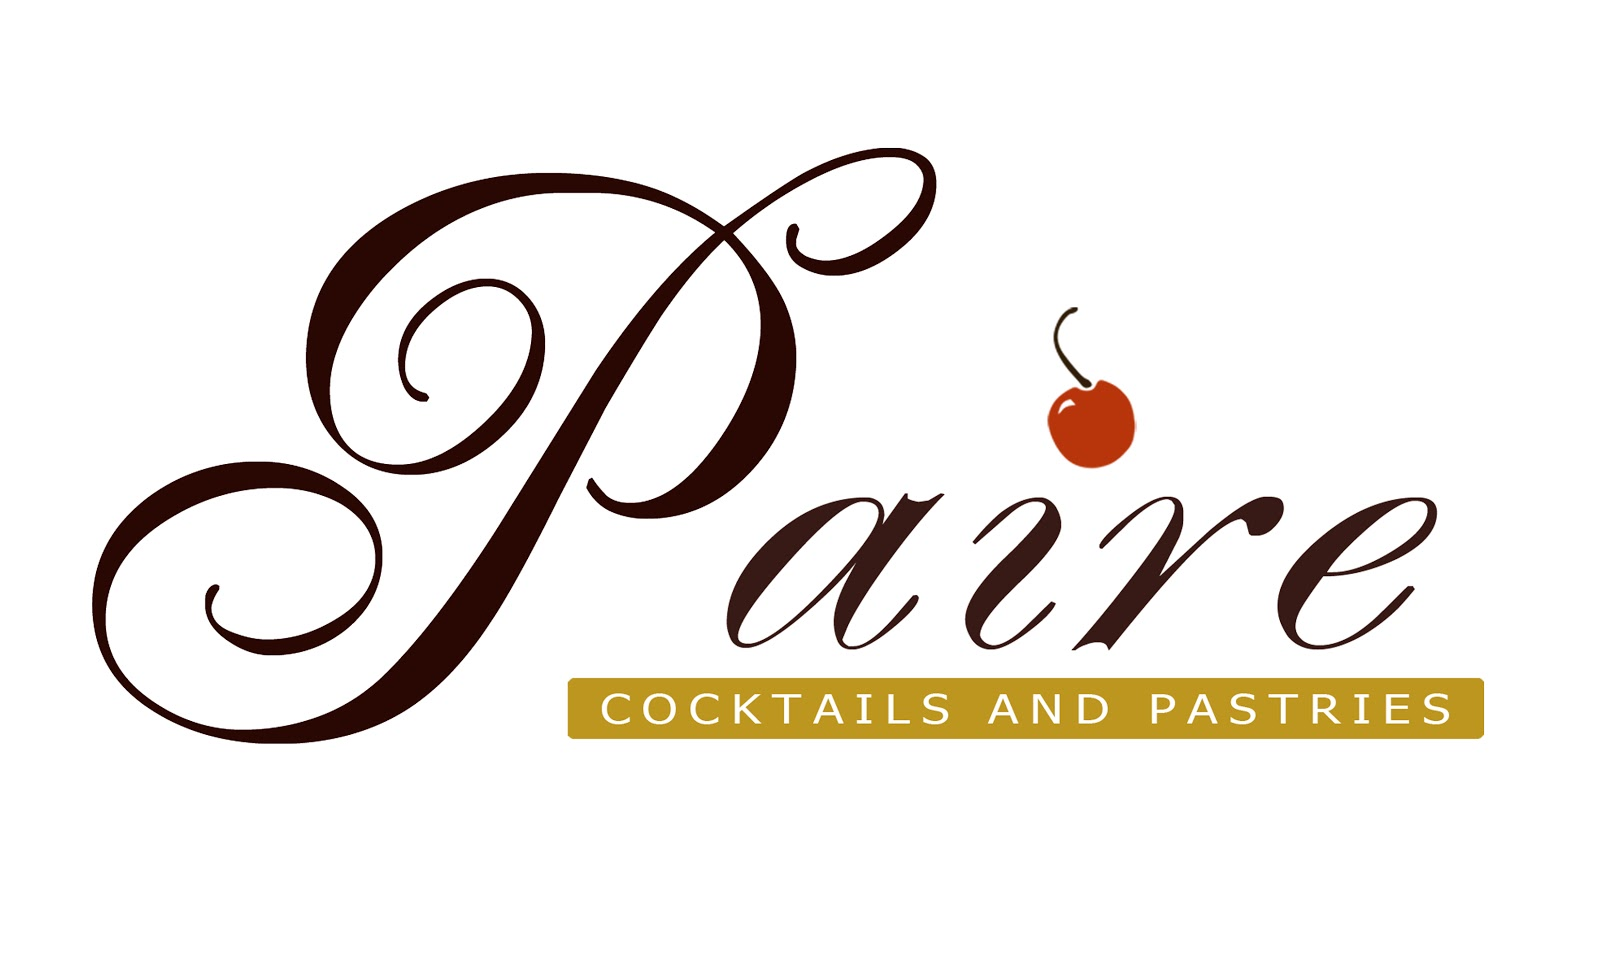 Paire Cocktails and Pastries